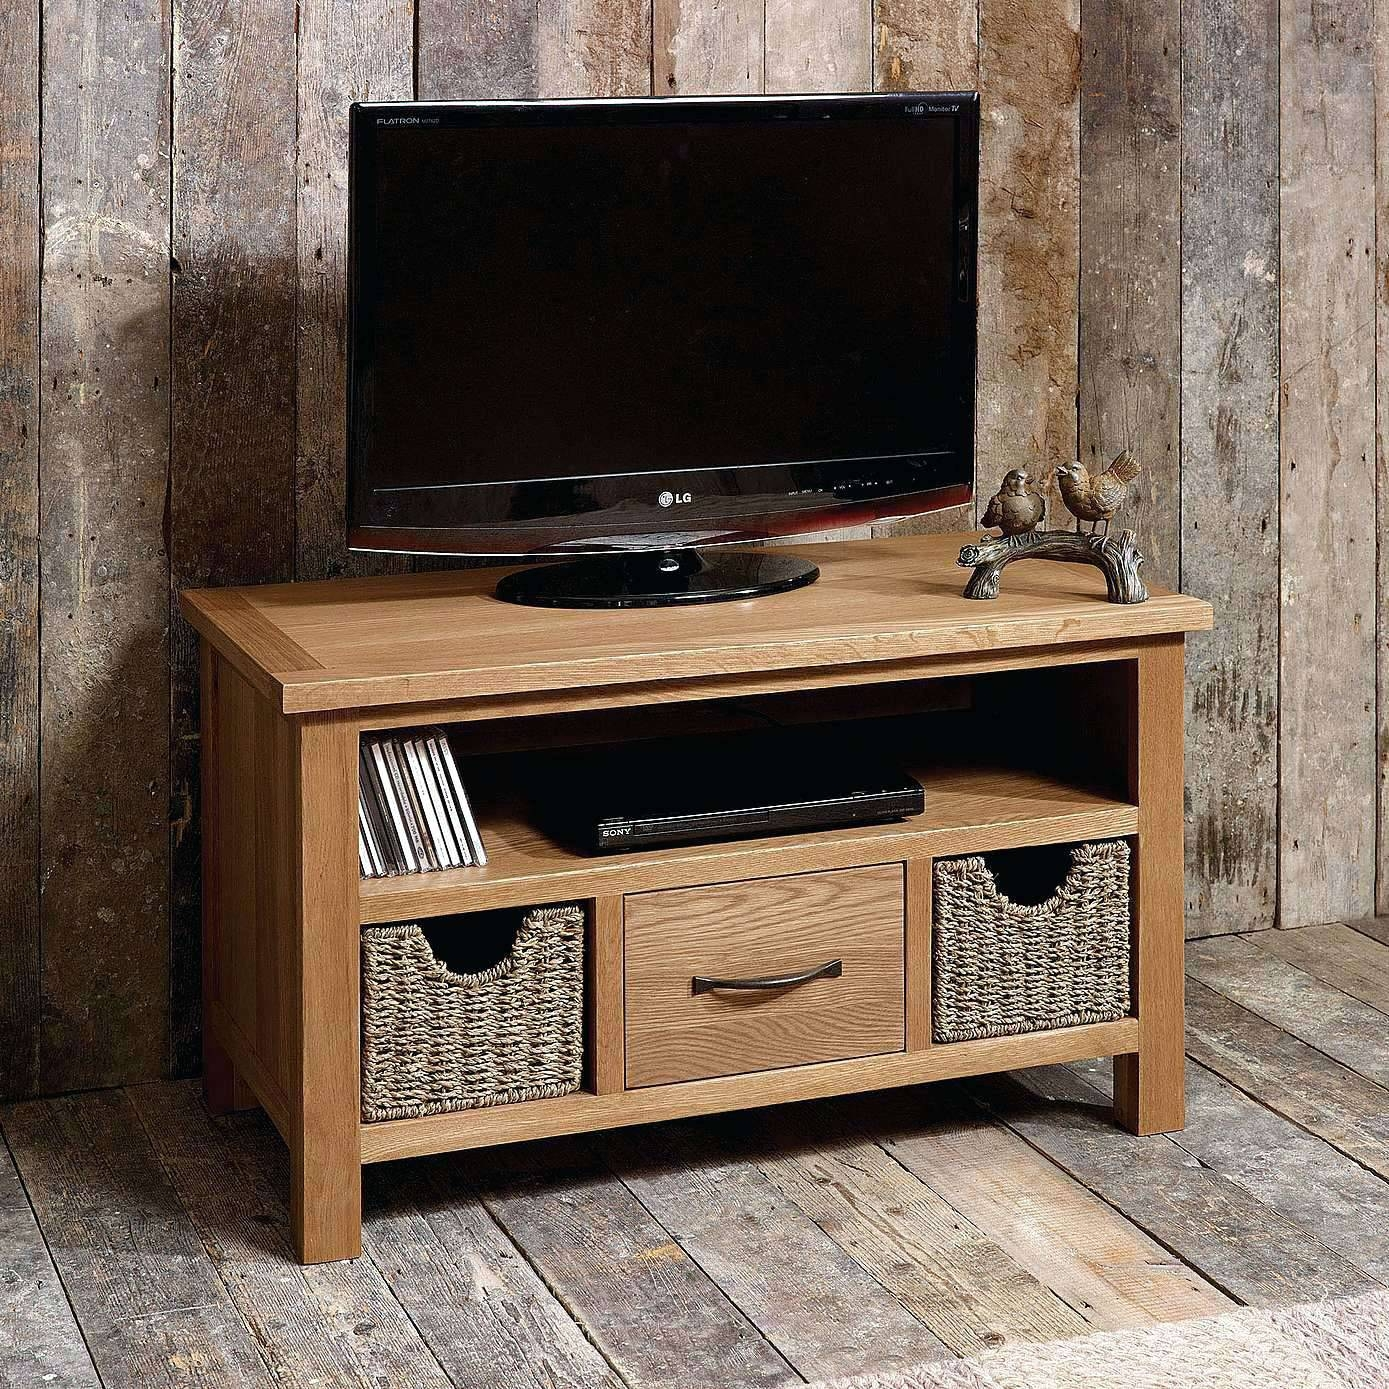 Tv Stand : 73 Furniture Ideas Cool Oak Veneer Tv Stand Oak Veneer Pertaining To Tv Stands With Baskets (View 10 of 15)